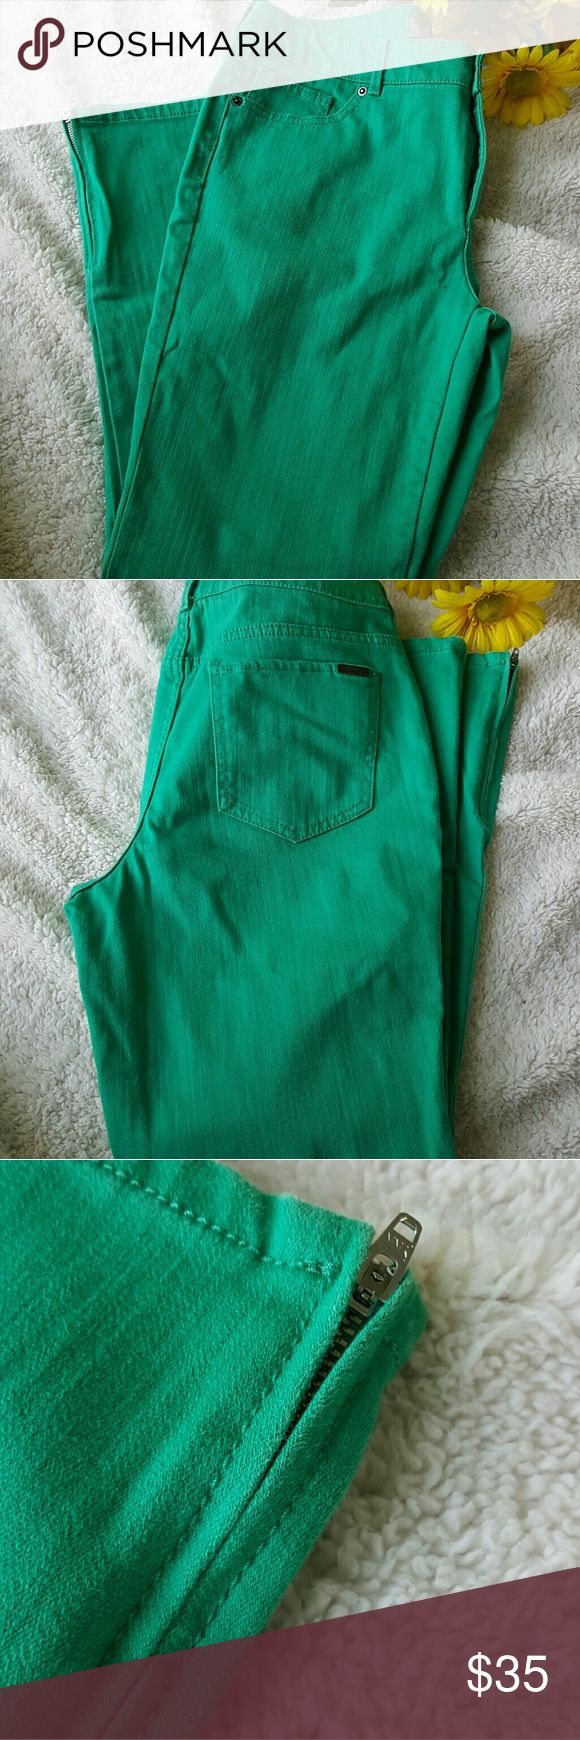 """Chico's so slimming green skinny jean So slimming by Chico's green skinny jeans with ankle zip. Chico's size 1 which is size 8. Flat lay 16 1/2"""" waist. 28"""" inseam. 9 1/2"""" rise. 74% cotton 12% polyester 12% rayon 2% spandex these jeans have stretch. Excellent condition. Chico's Jeans"""